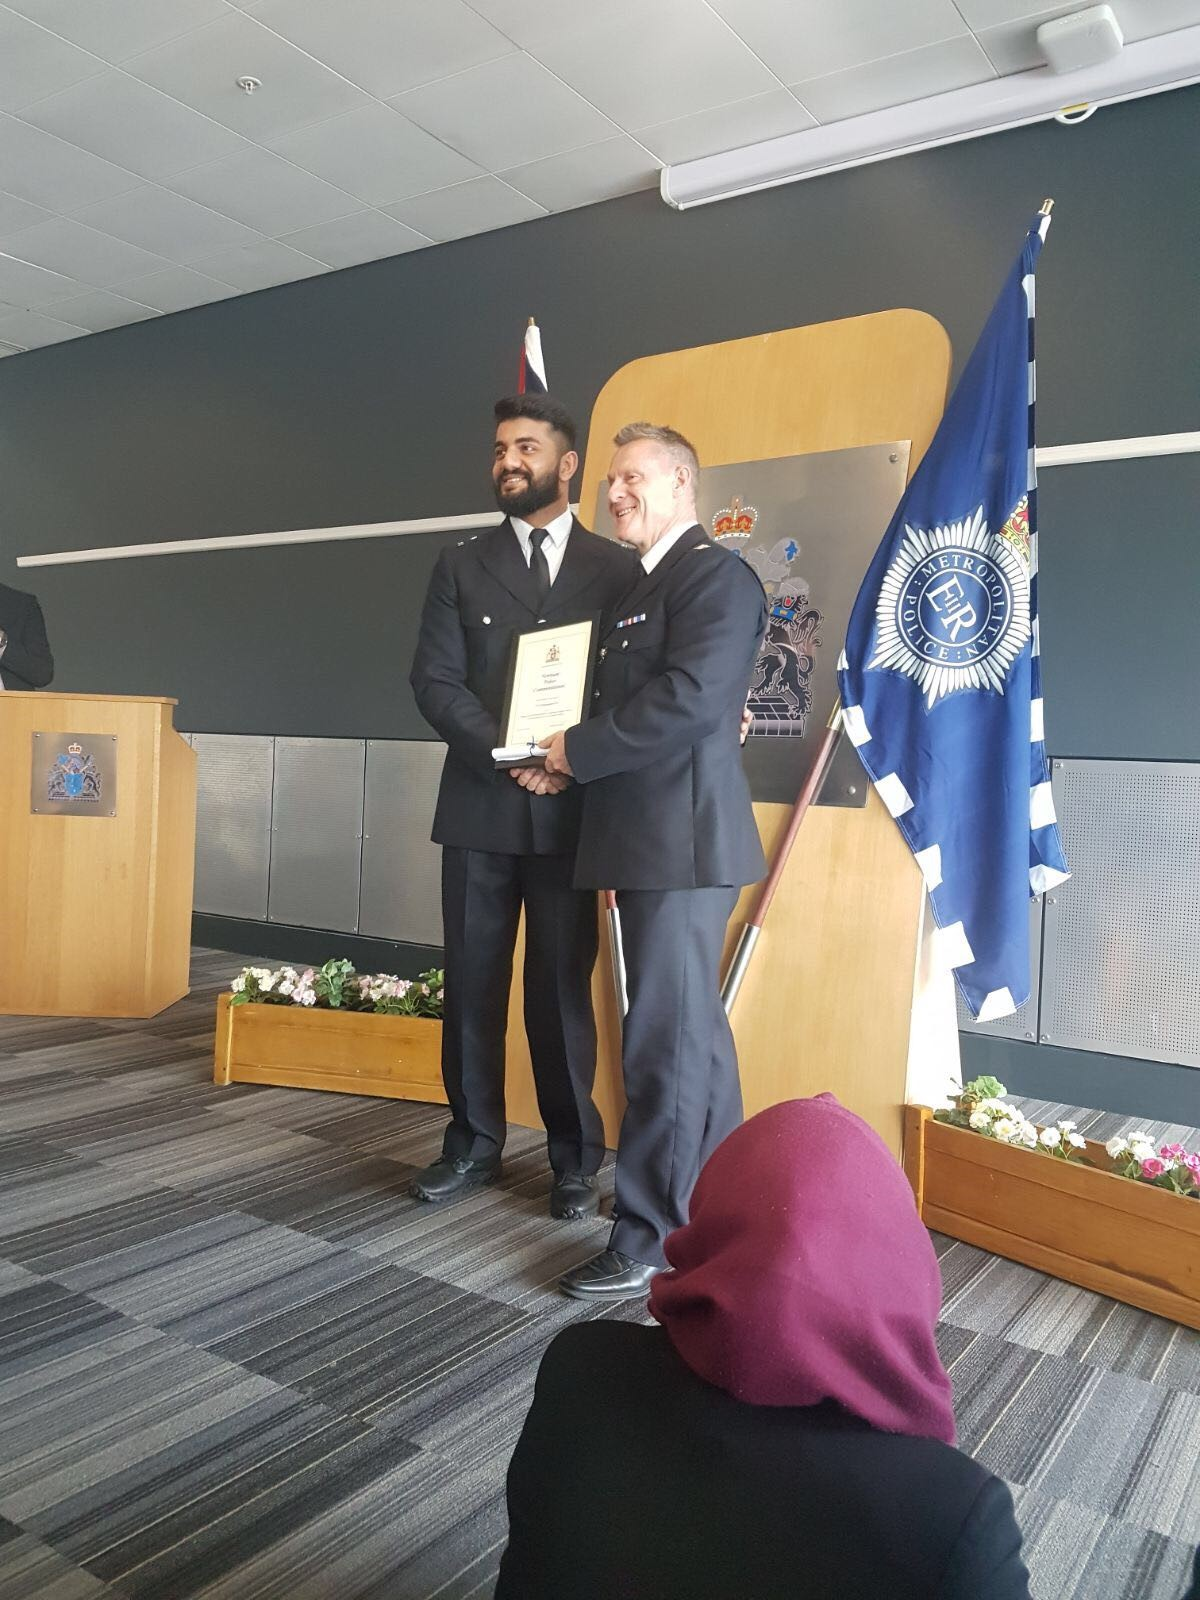 QIGS-London-Metropolitan-Police-Commendation-Ceremony